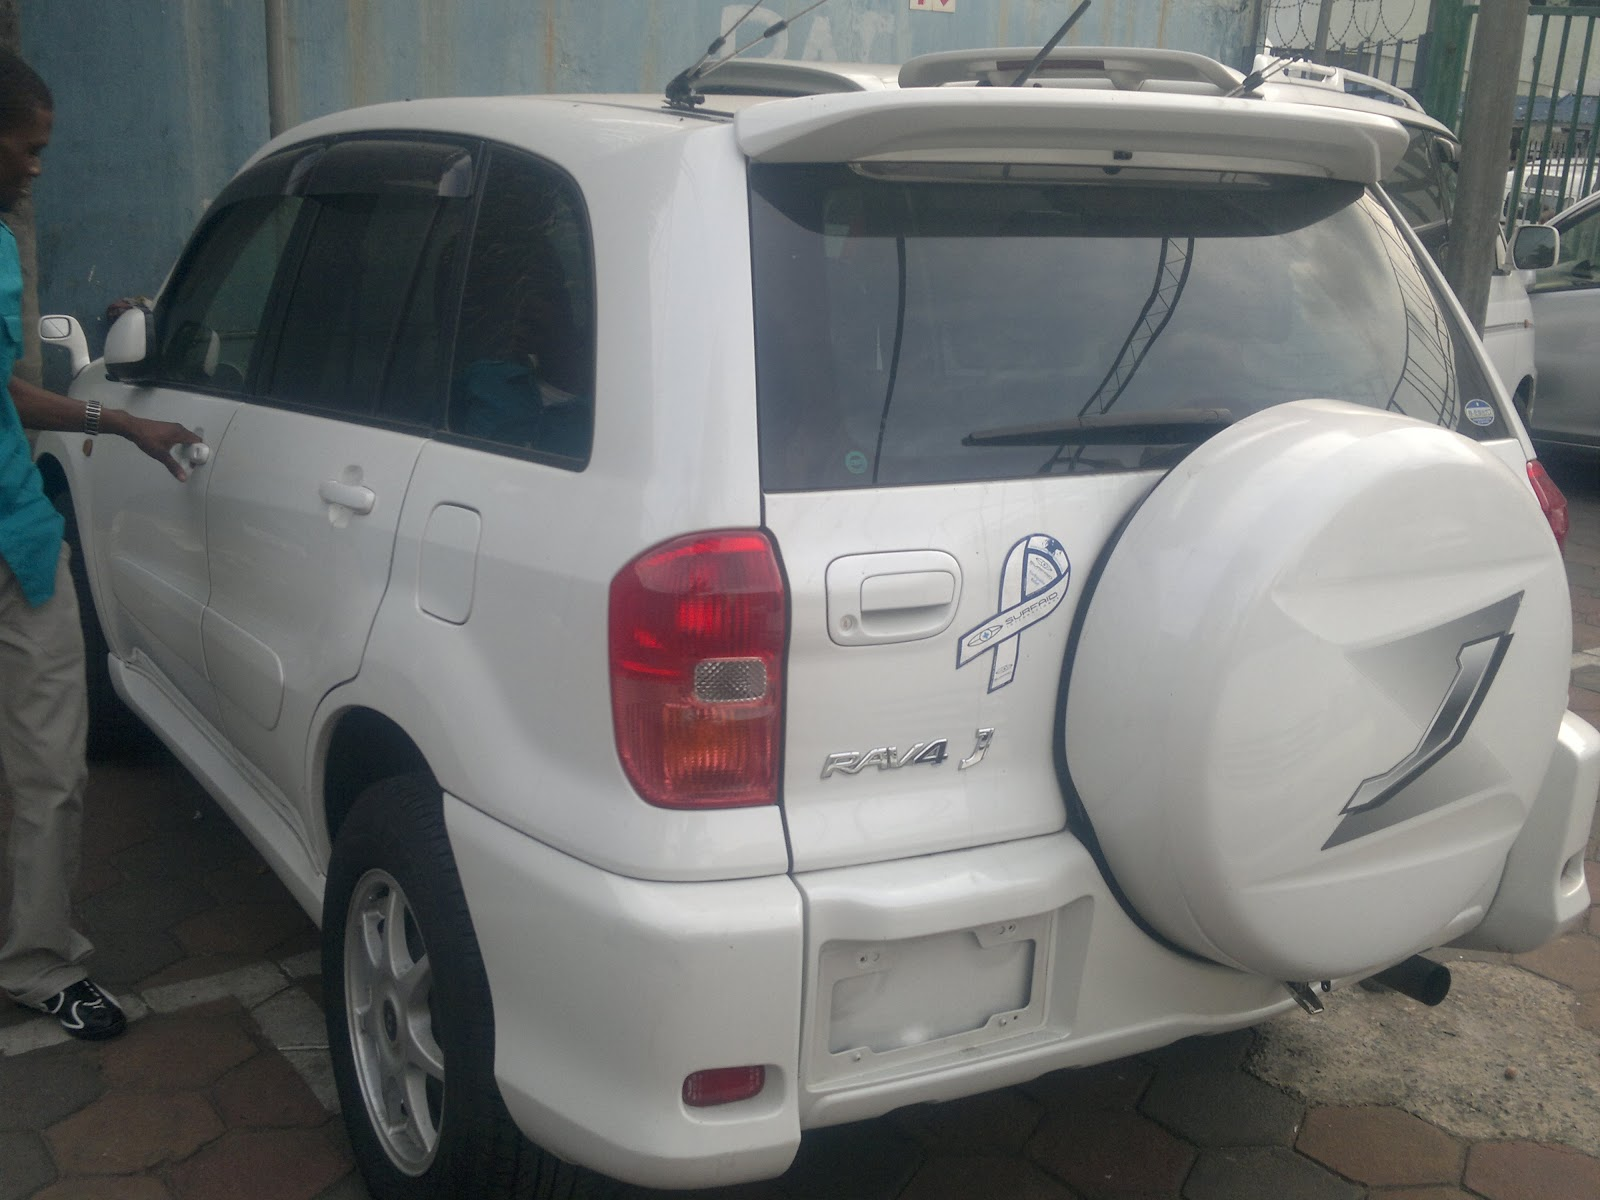 Cheap 2nd Hand Cars for Sale Awesome Affordable Used Japanese Cars Trucks and Mini Buses In Durban south